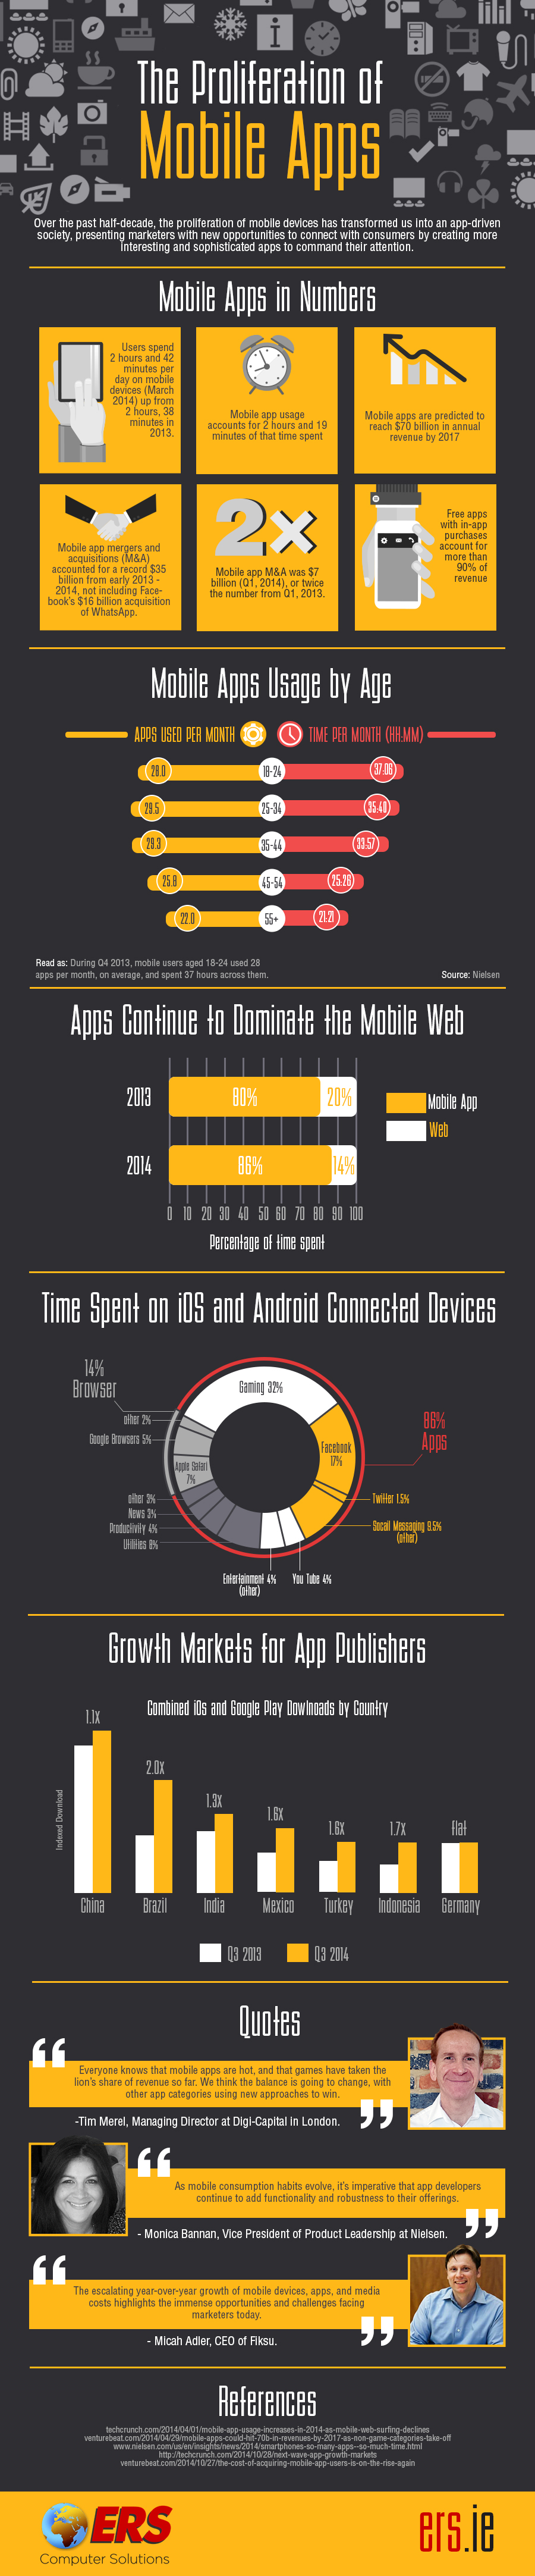 The Proliferation of Mobile Apps